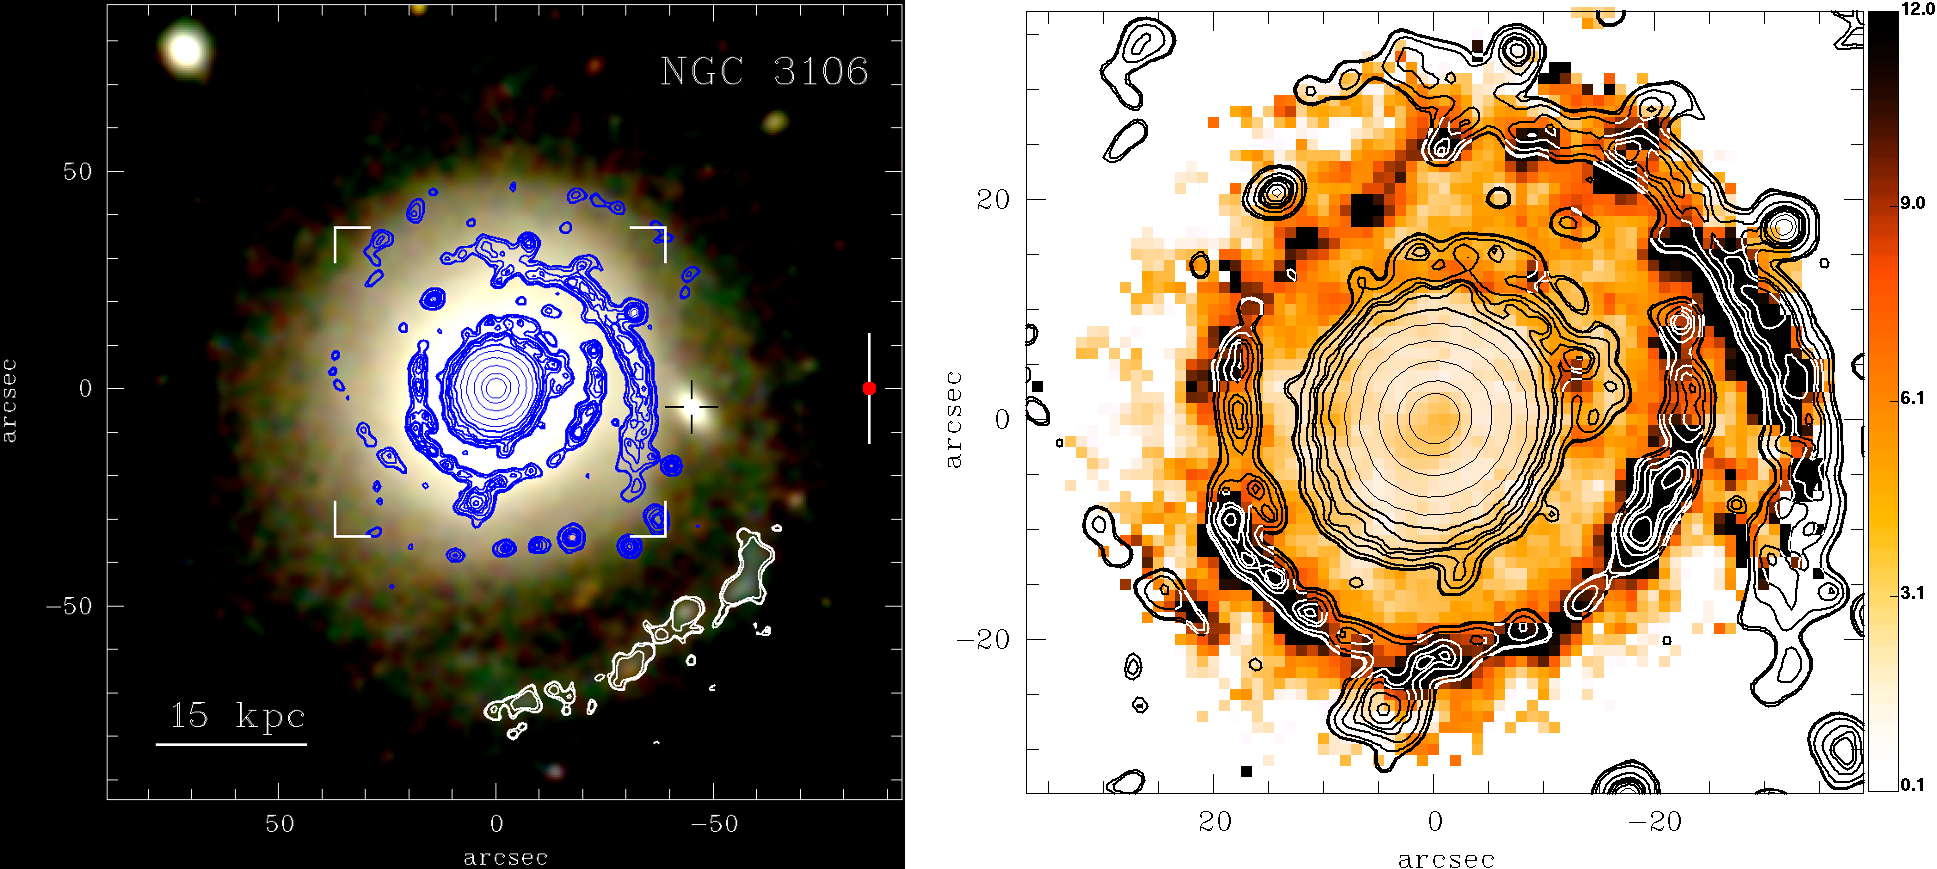 """Figure 3: True colour image of galaxy NGC3106, overlaid with contours depicting the spiral-like star-forming regions (left). """"Intensity"""" of the Equivalent Width in H-alpha in galaxy NGC3106, overlaid with contours depicting the spiral-like star-forming regions. Illustration credits: Gomes et al. (2016)."""